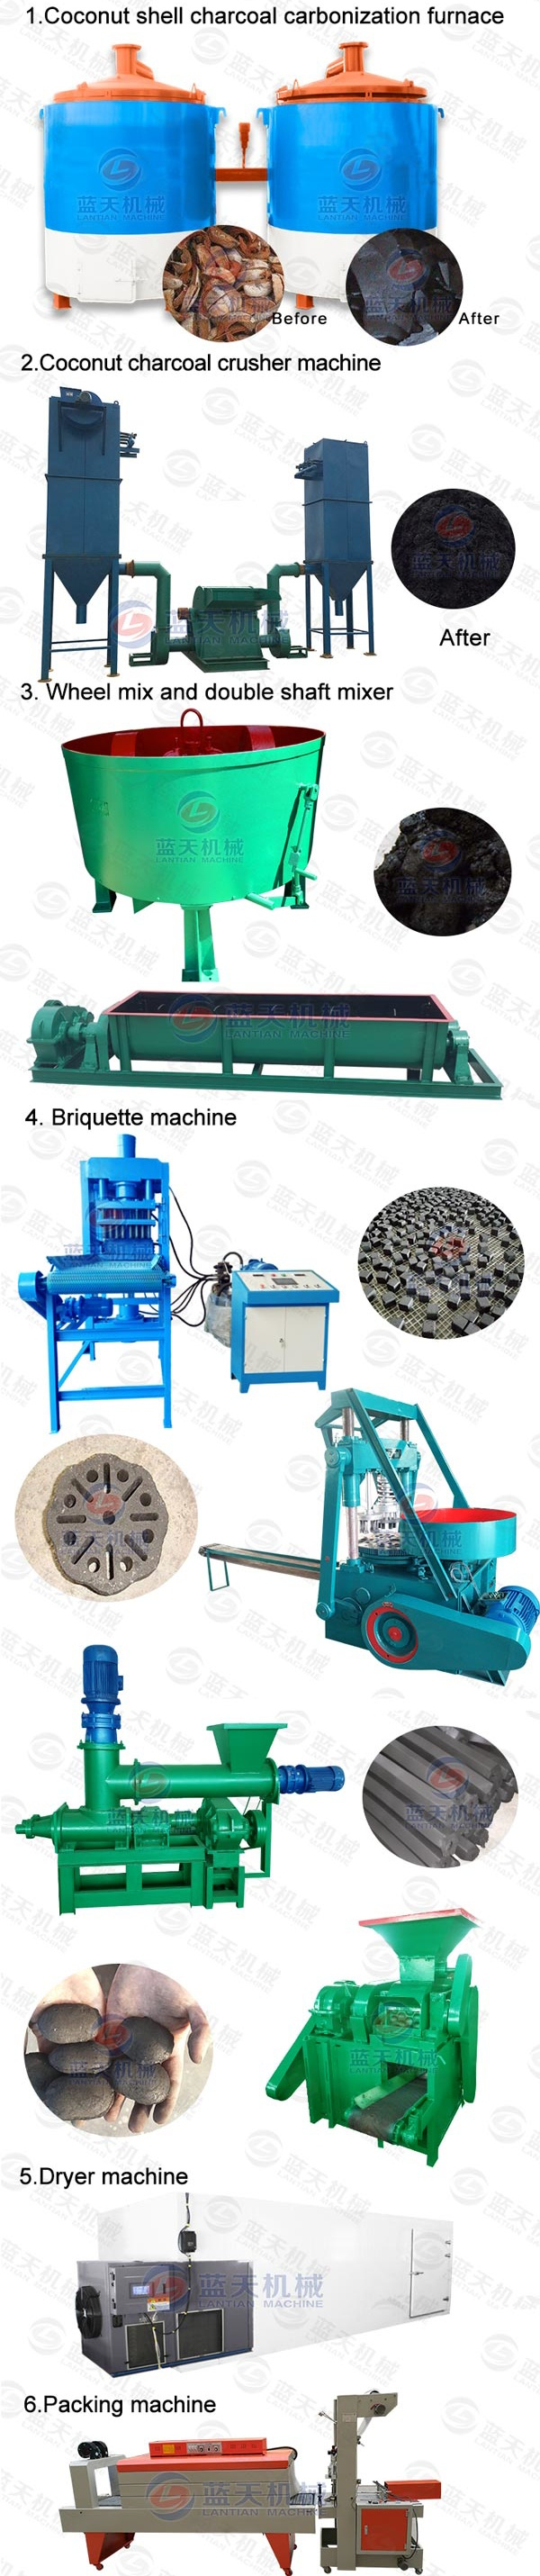 Product Line of Coconut Shell Carbonization Furnace